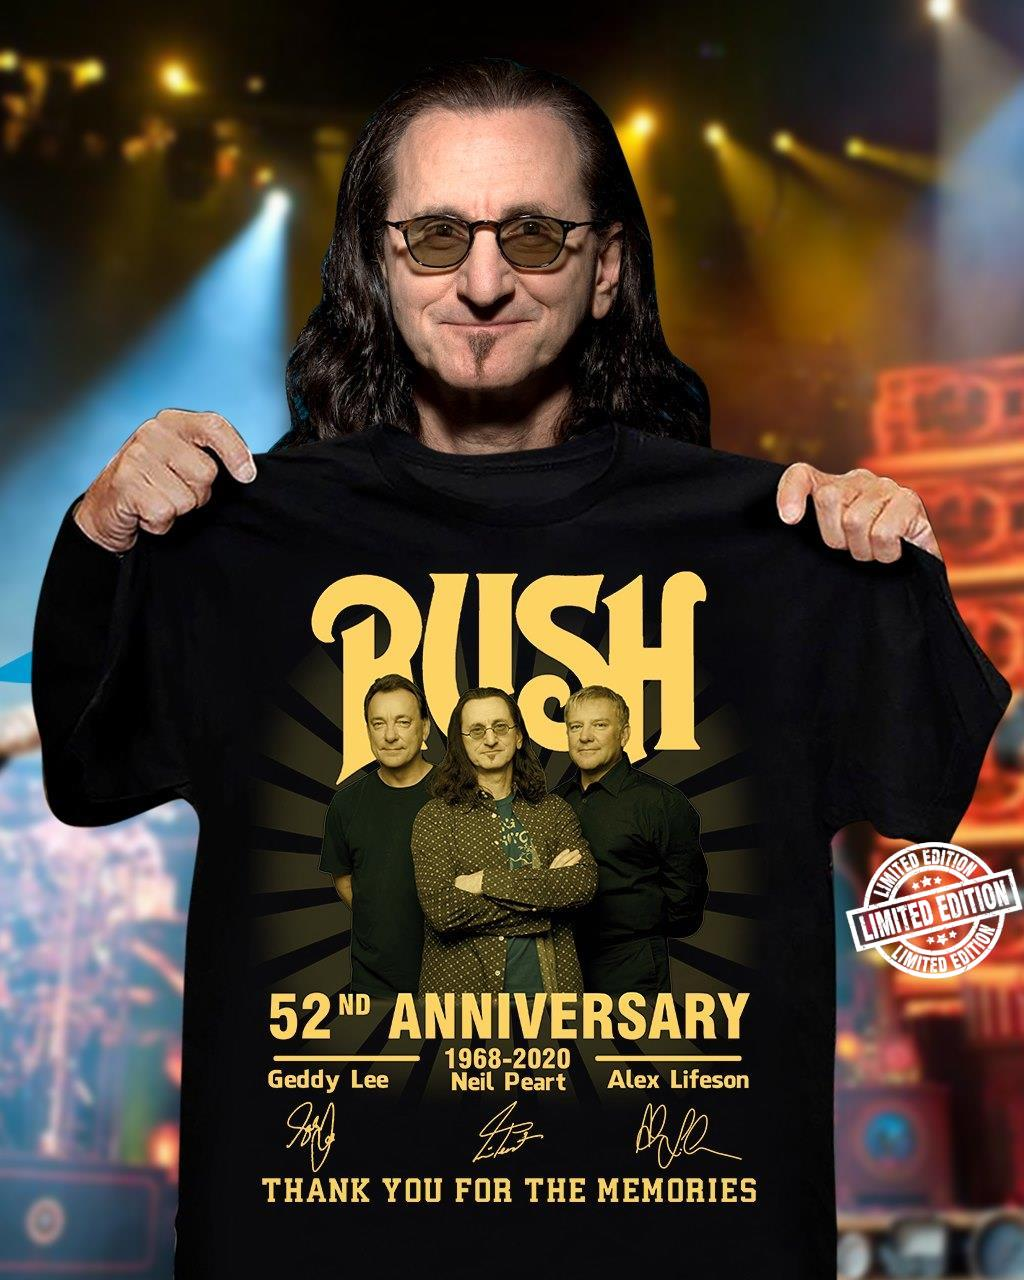 Rush 52nd anniversary thank you for the memories shirt